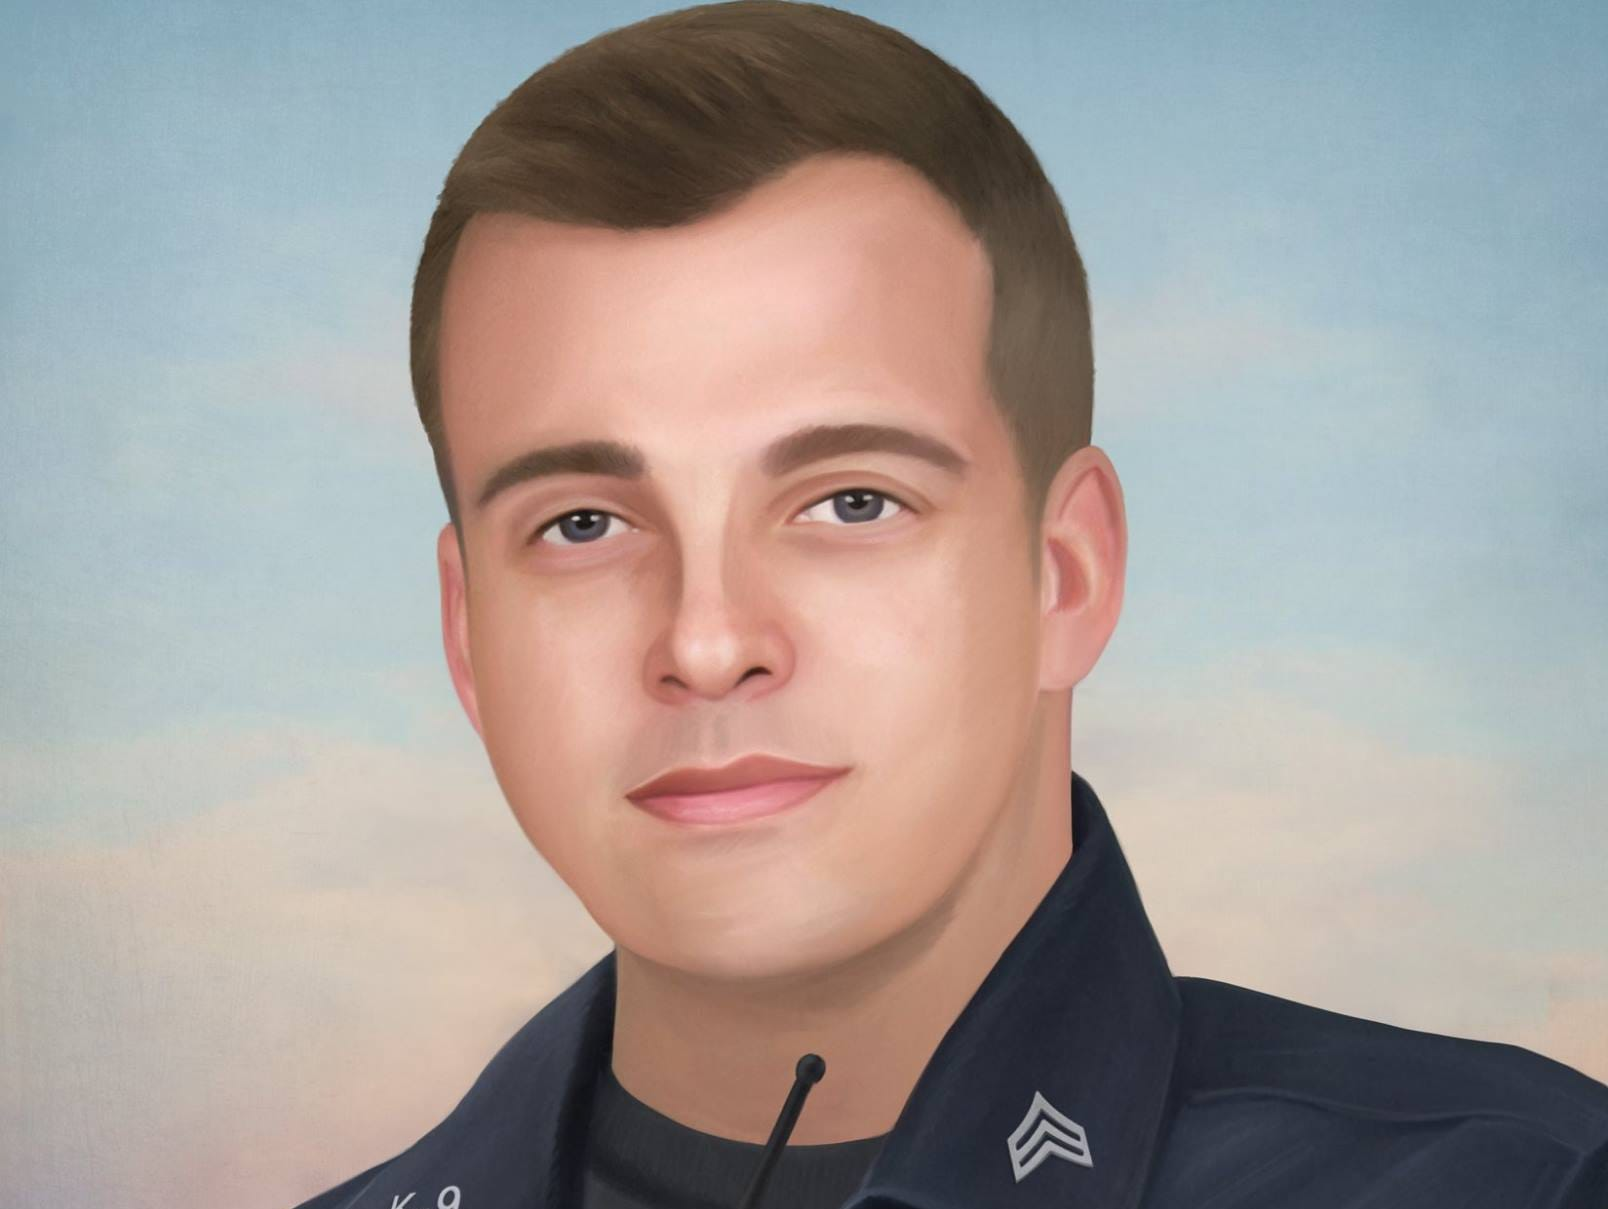 On December 12th, Charlestown (Indiana) Police Sergeant Benton Bertram attempted to pull over a stolen vehicle when the driver took off. During the pursuit, Ben lost control of his patrol vehicle and struck a tree. Several officers responded and tried to render aid but Sergeant Bertram's injuries were too severe and he died at the scene. Painting by Jonny Castro Art